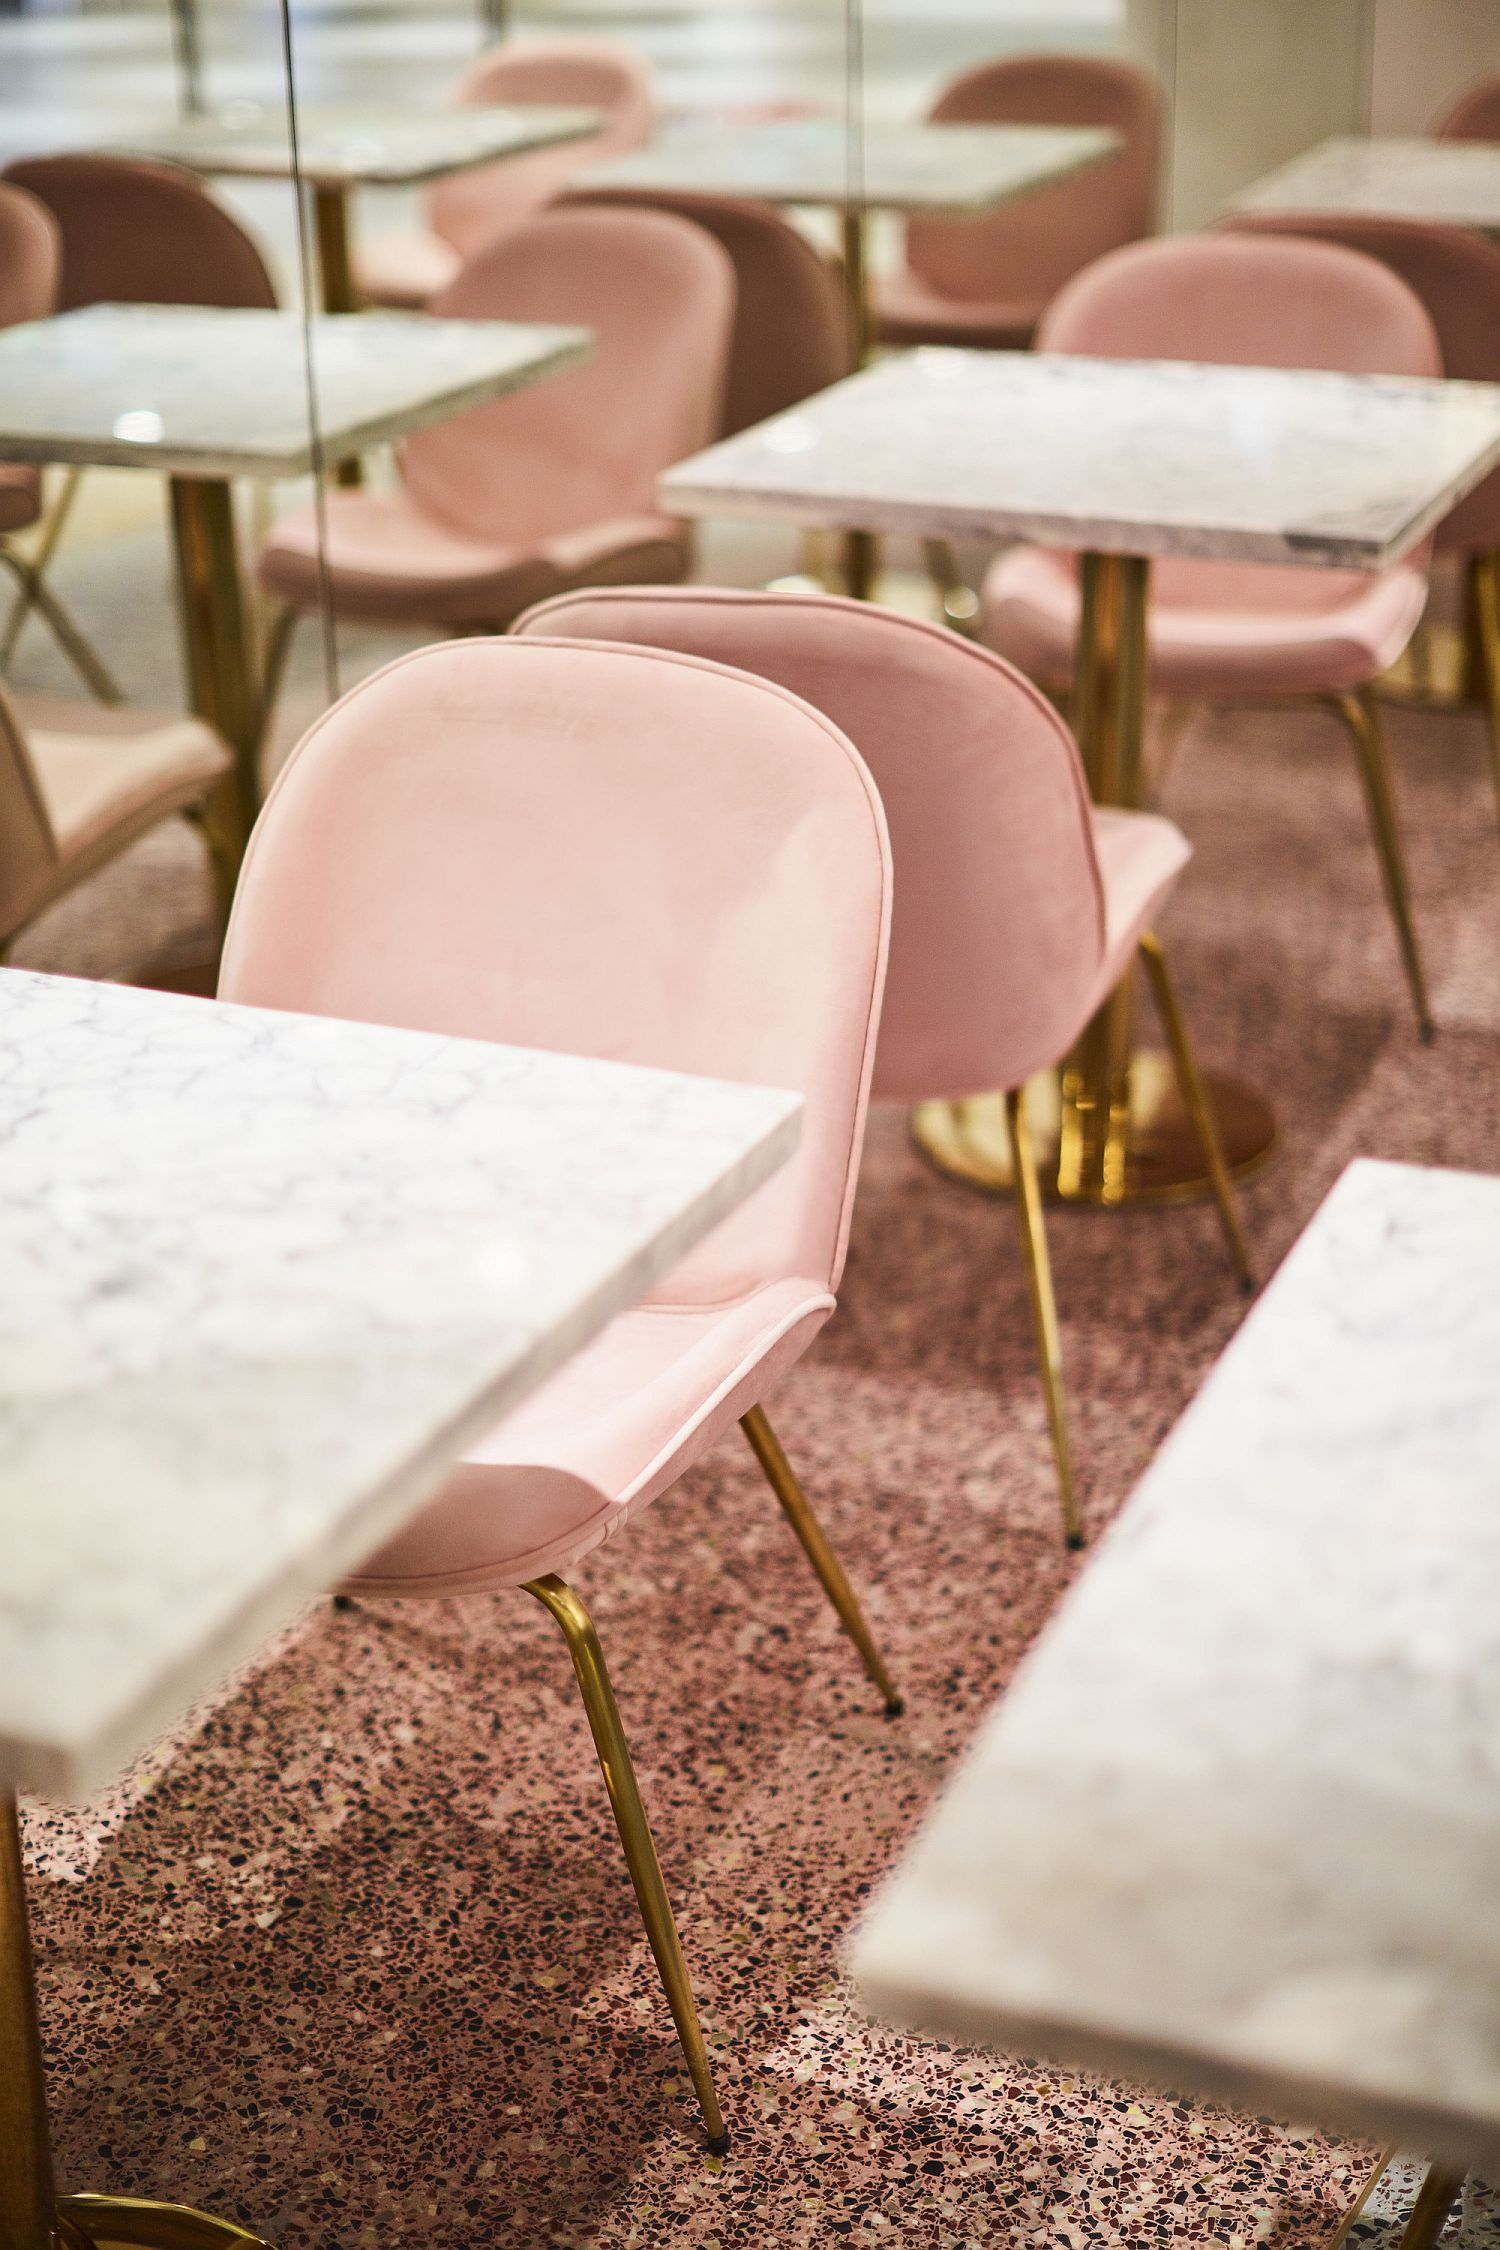 Marble top dining tables with metallic legs and pastel pink chairs next to them